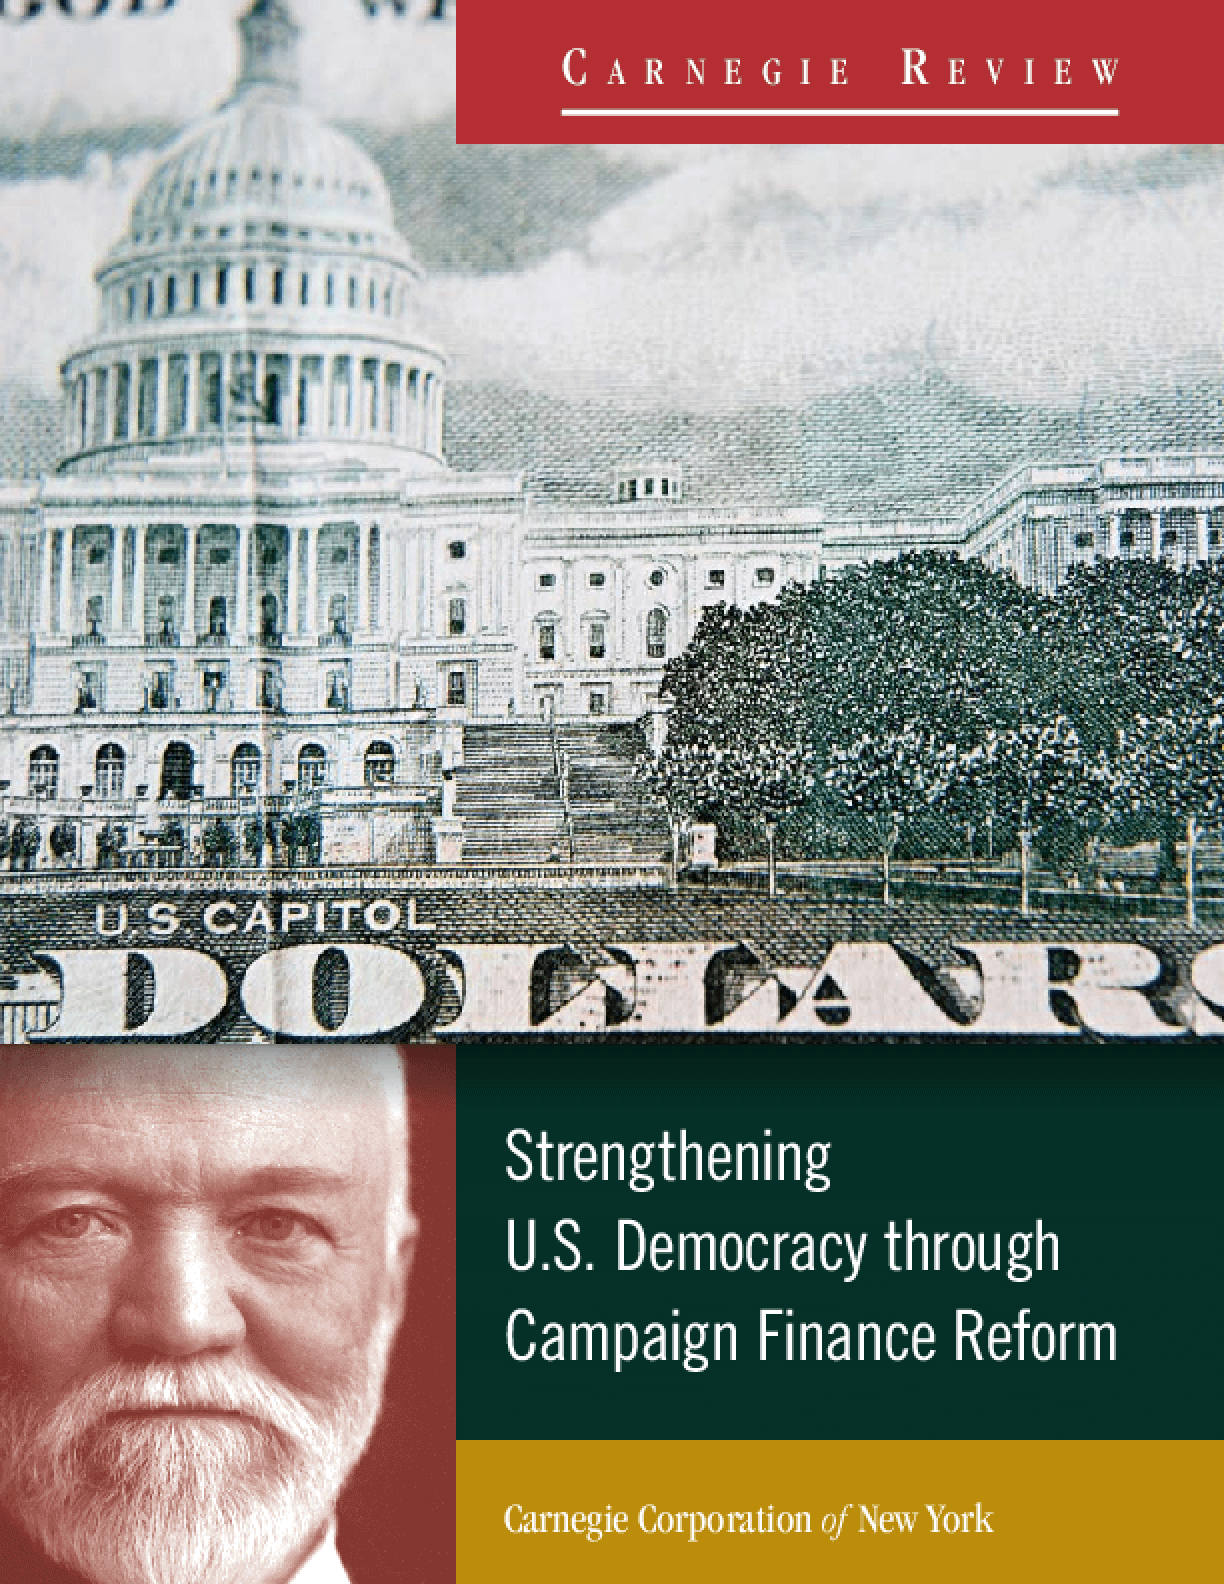 Strengthening U.S. Democracy through Campaign Finance Reform